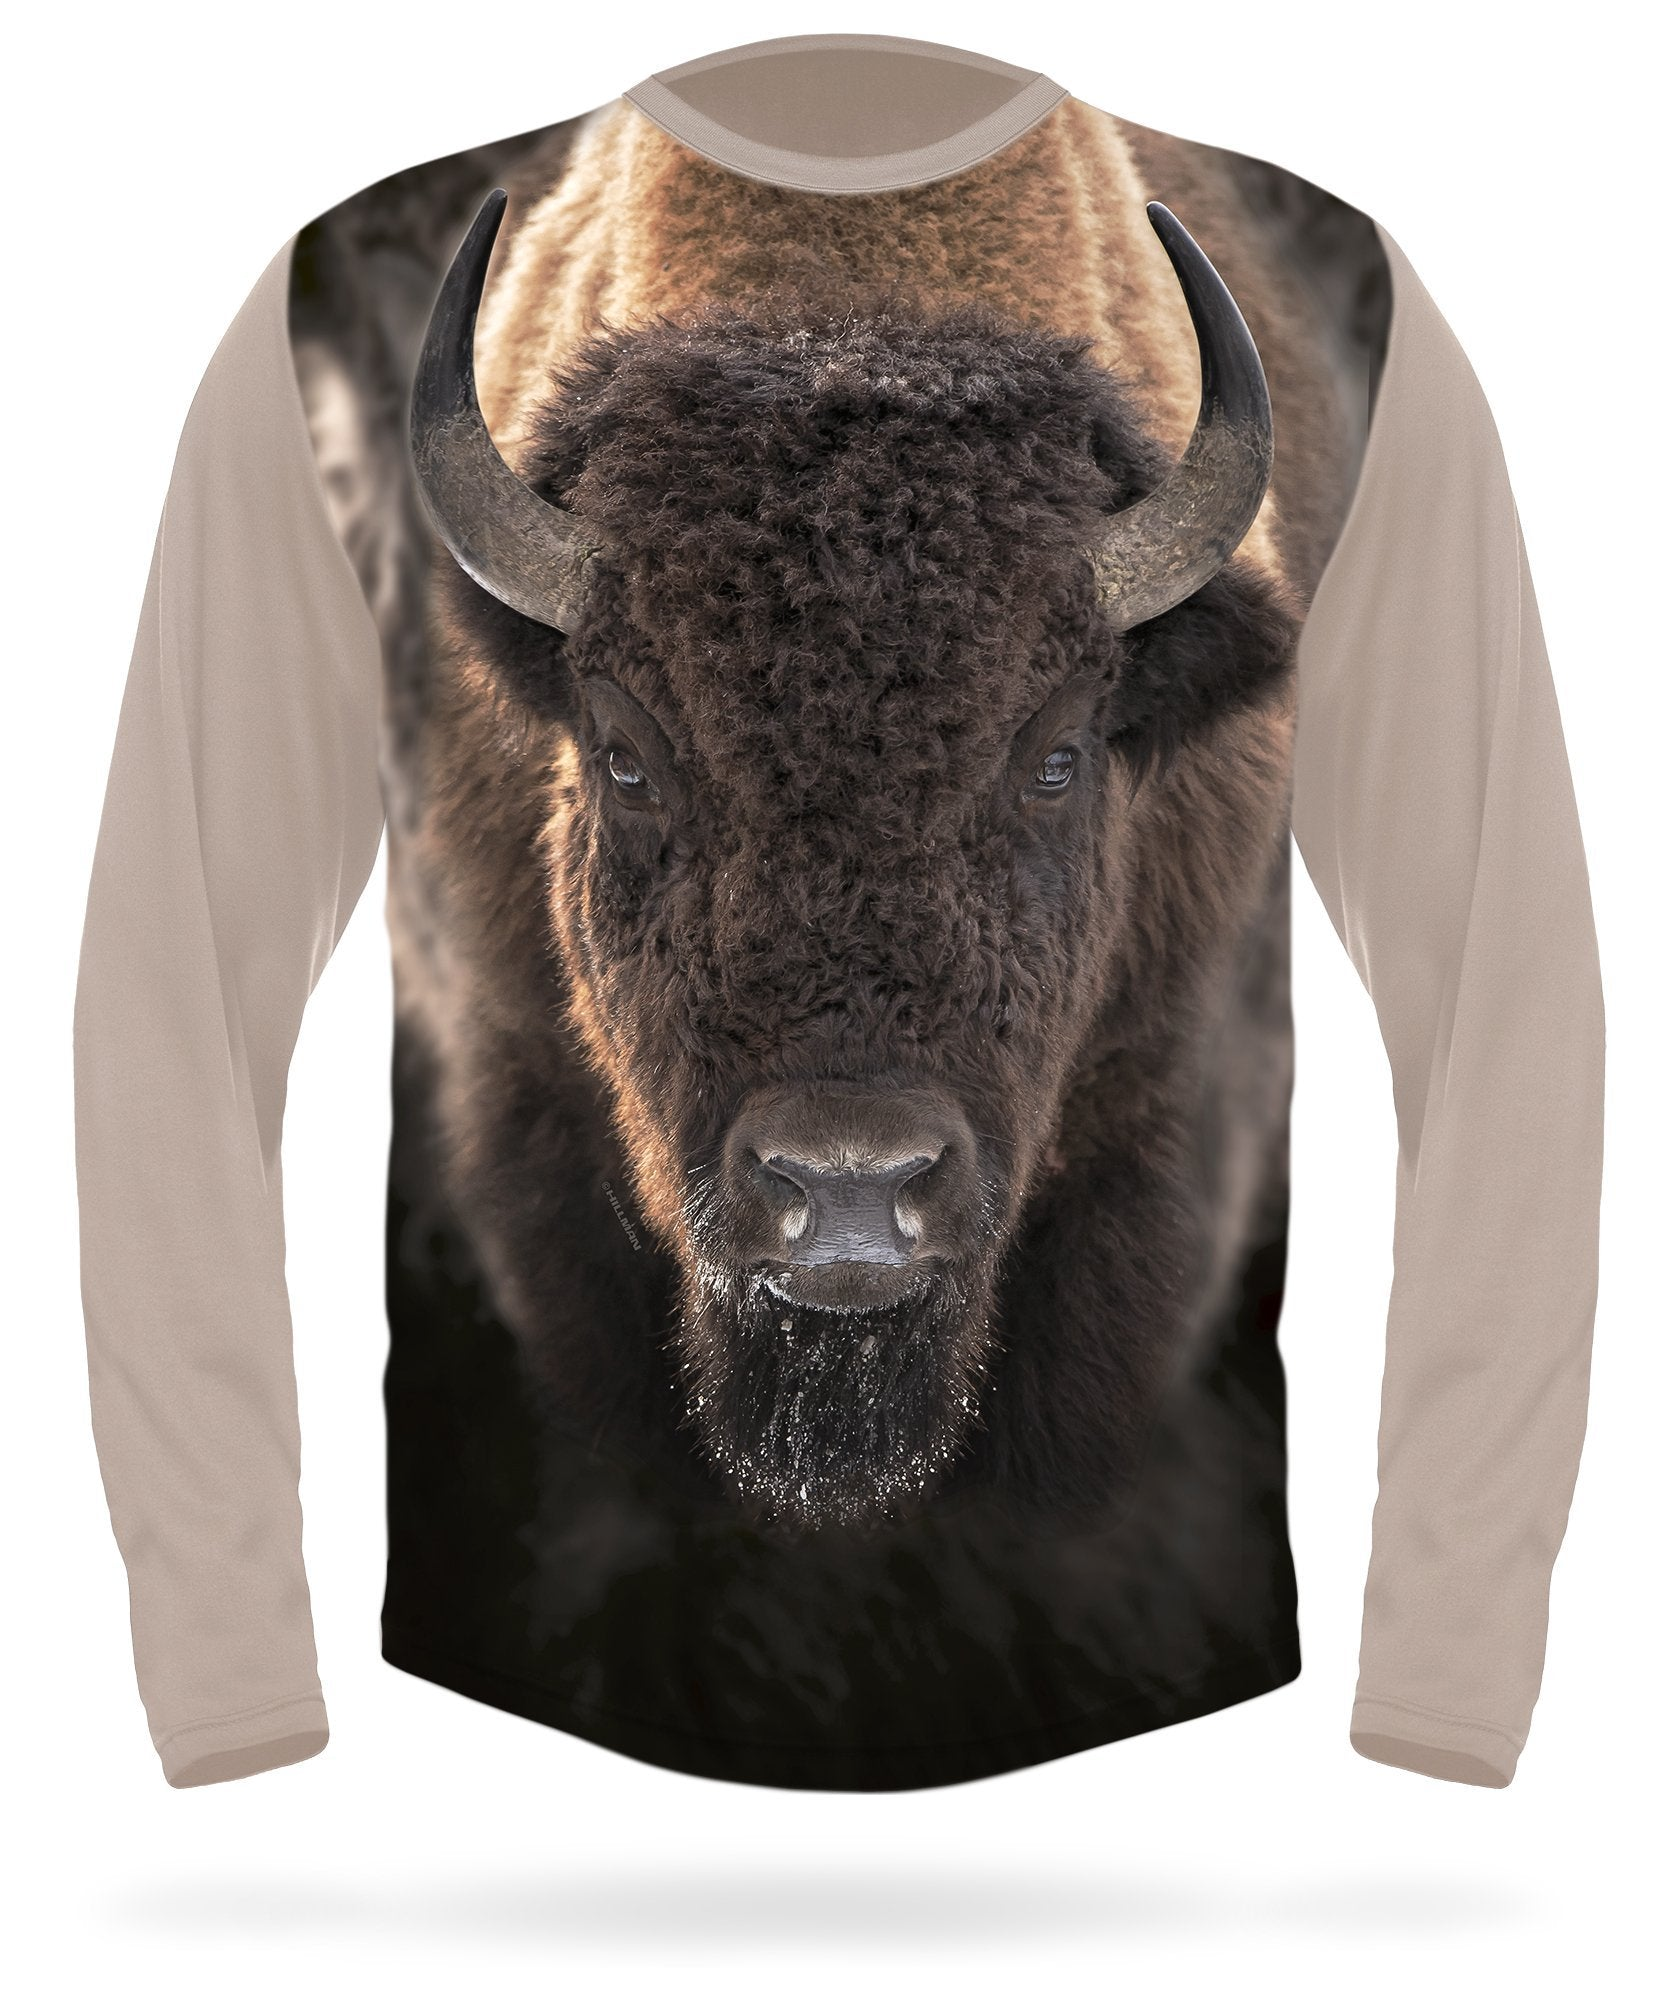 Bison T-Shirt - Long Sleeve